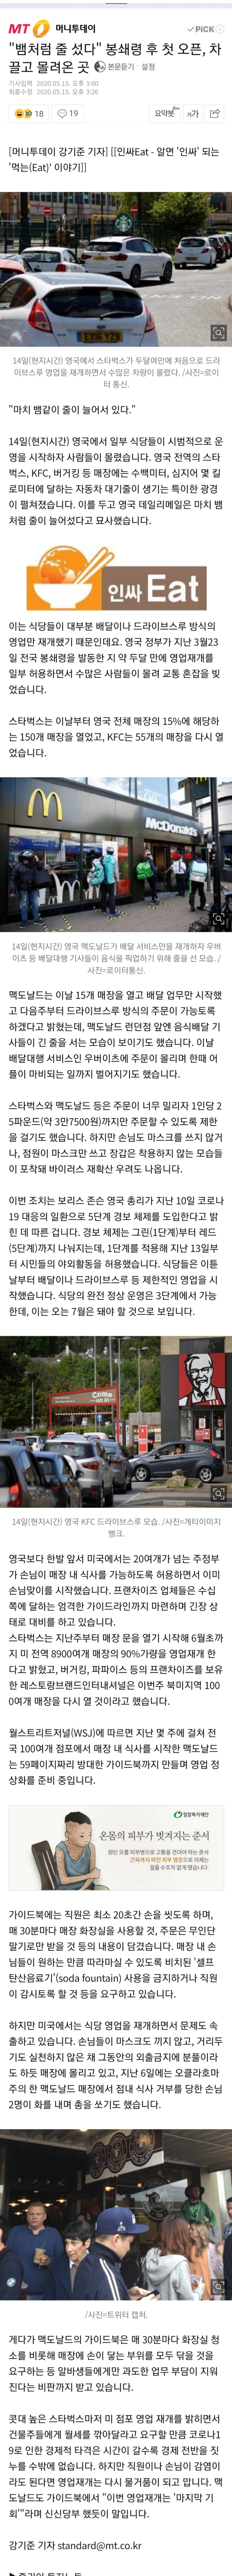 Screenshot_20200515-164717_NAVER.jpg